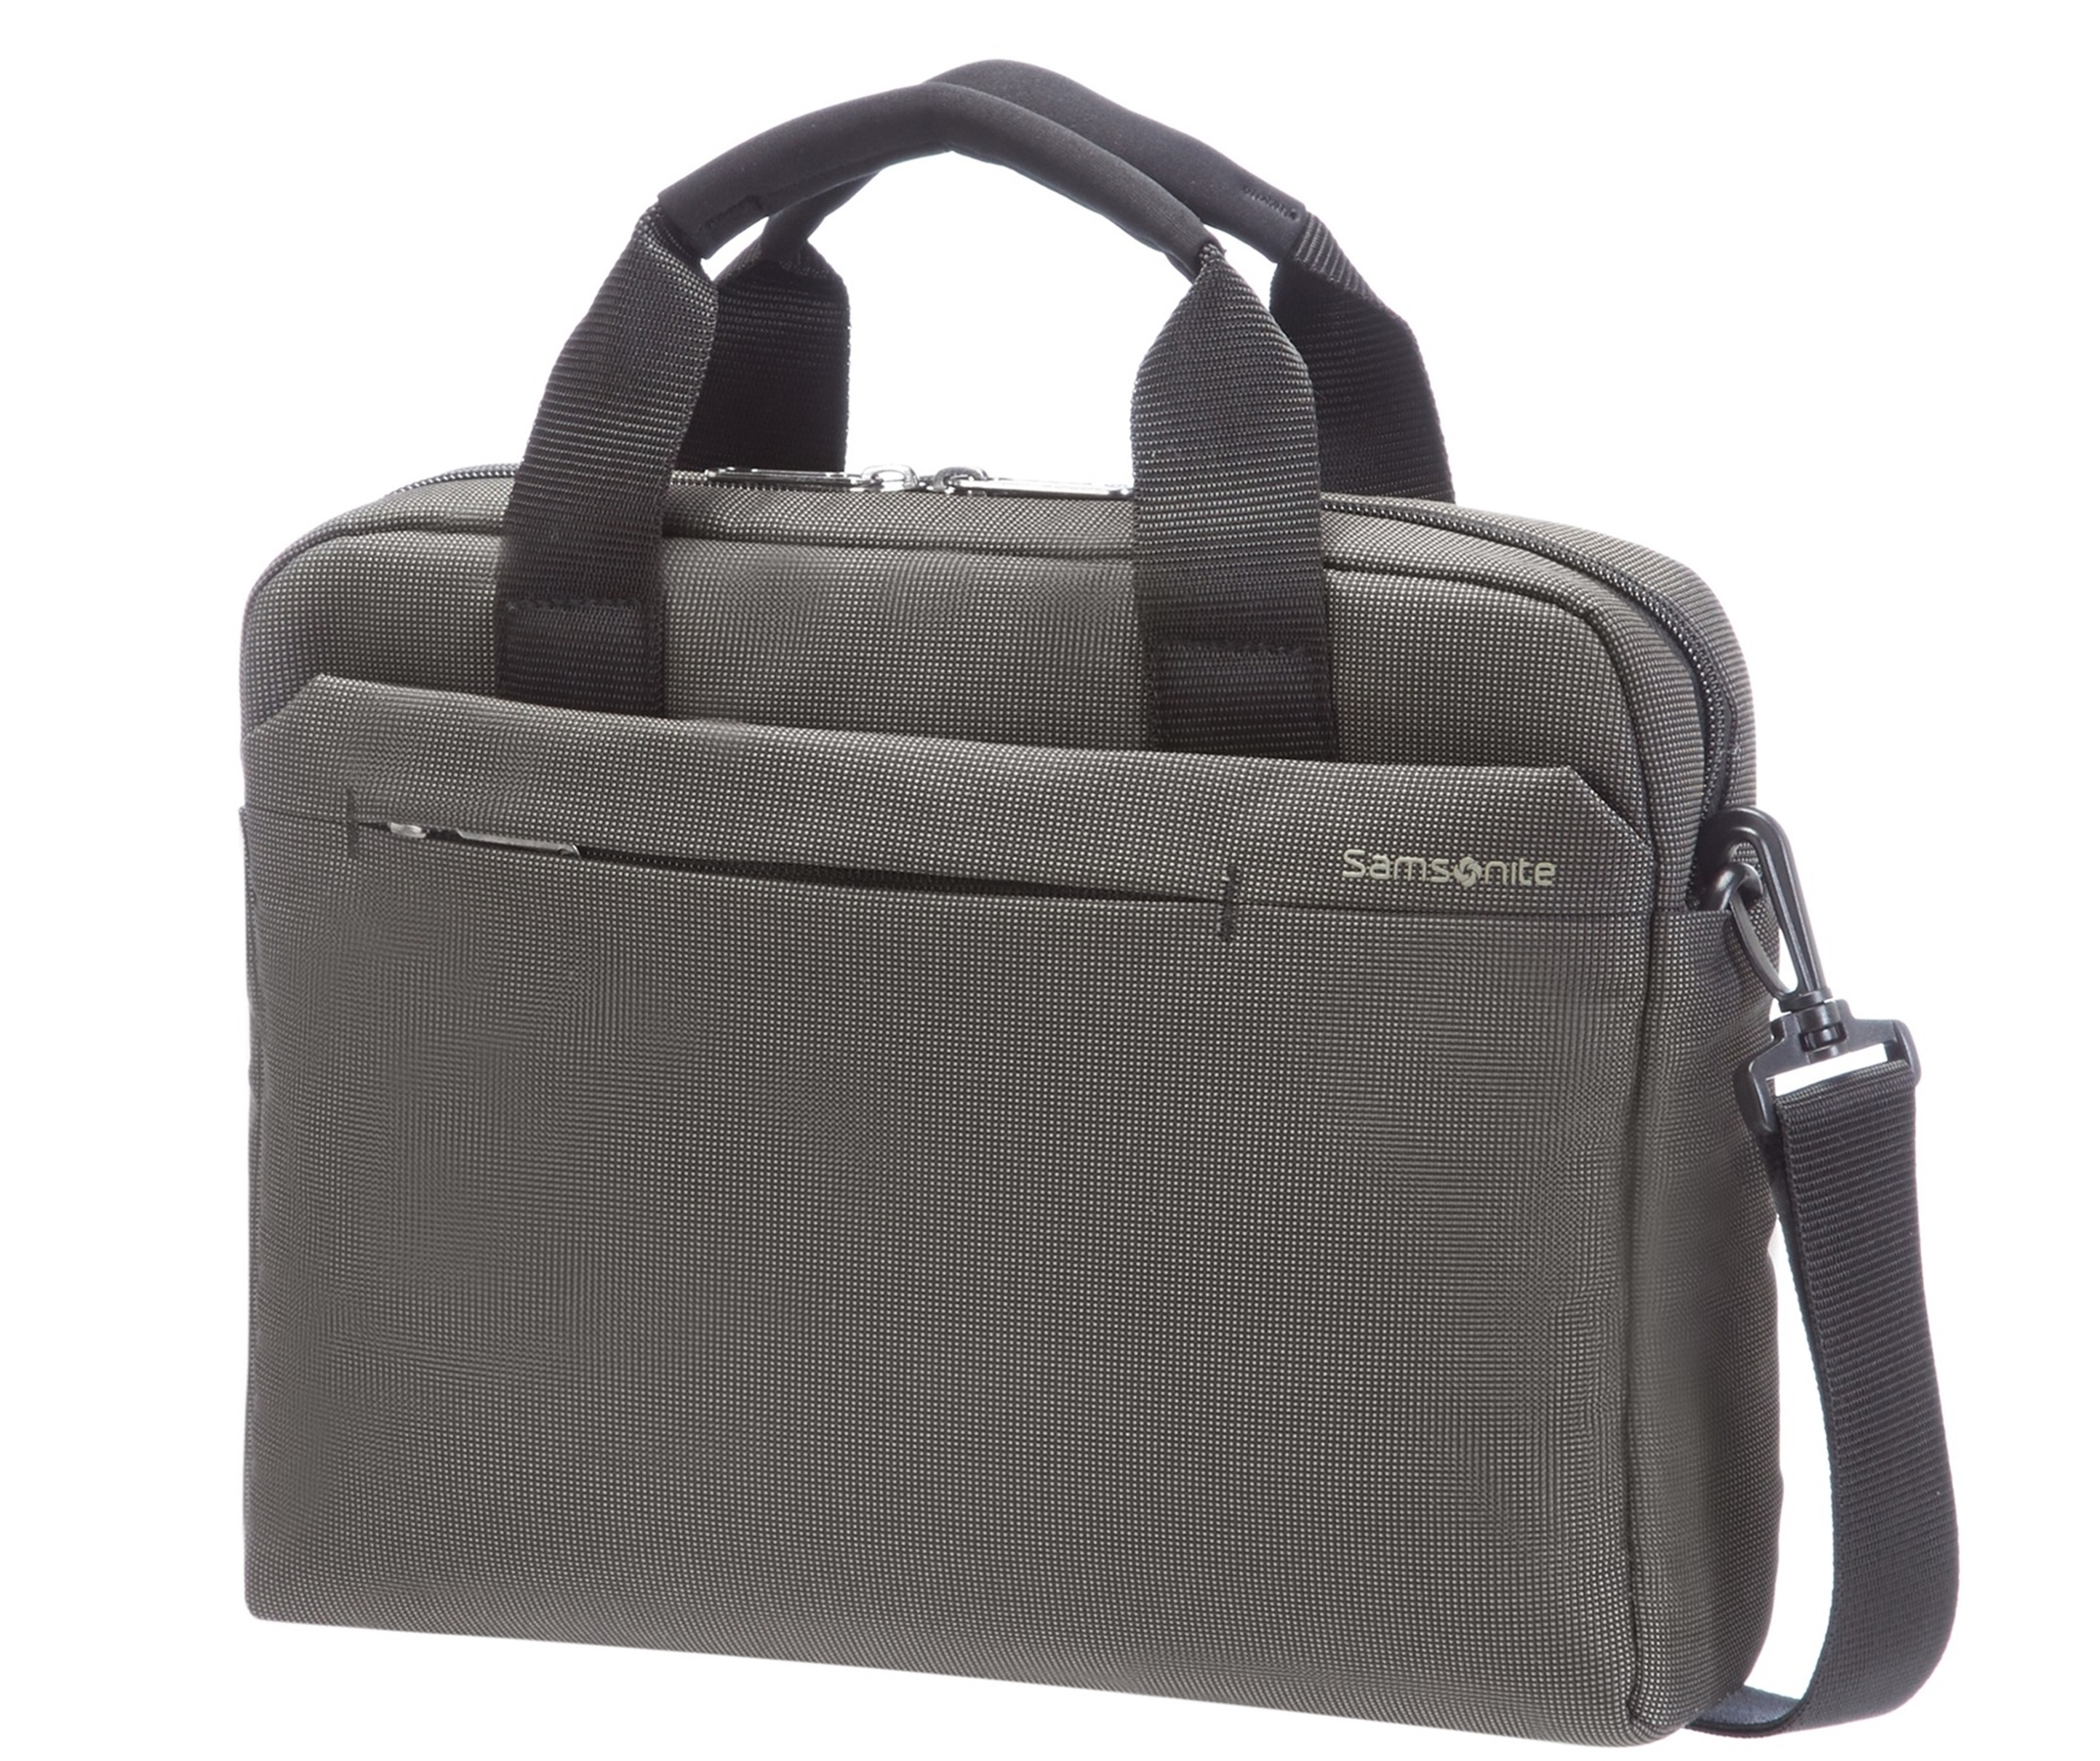 SAMSONITE - BORSE NOTEBOOK - 5414847367625